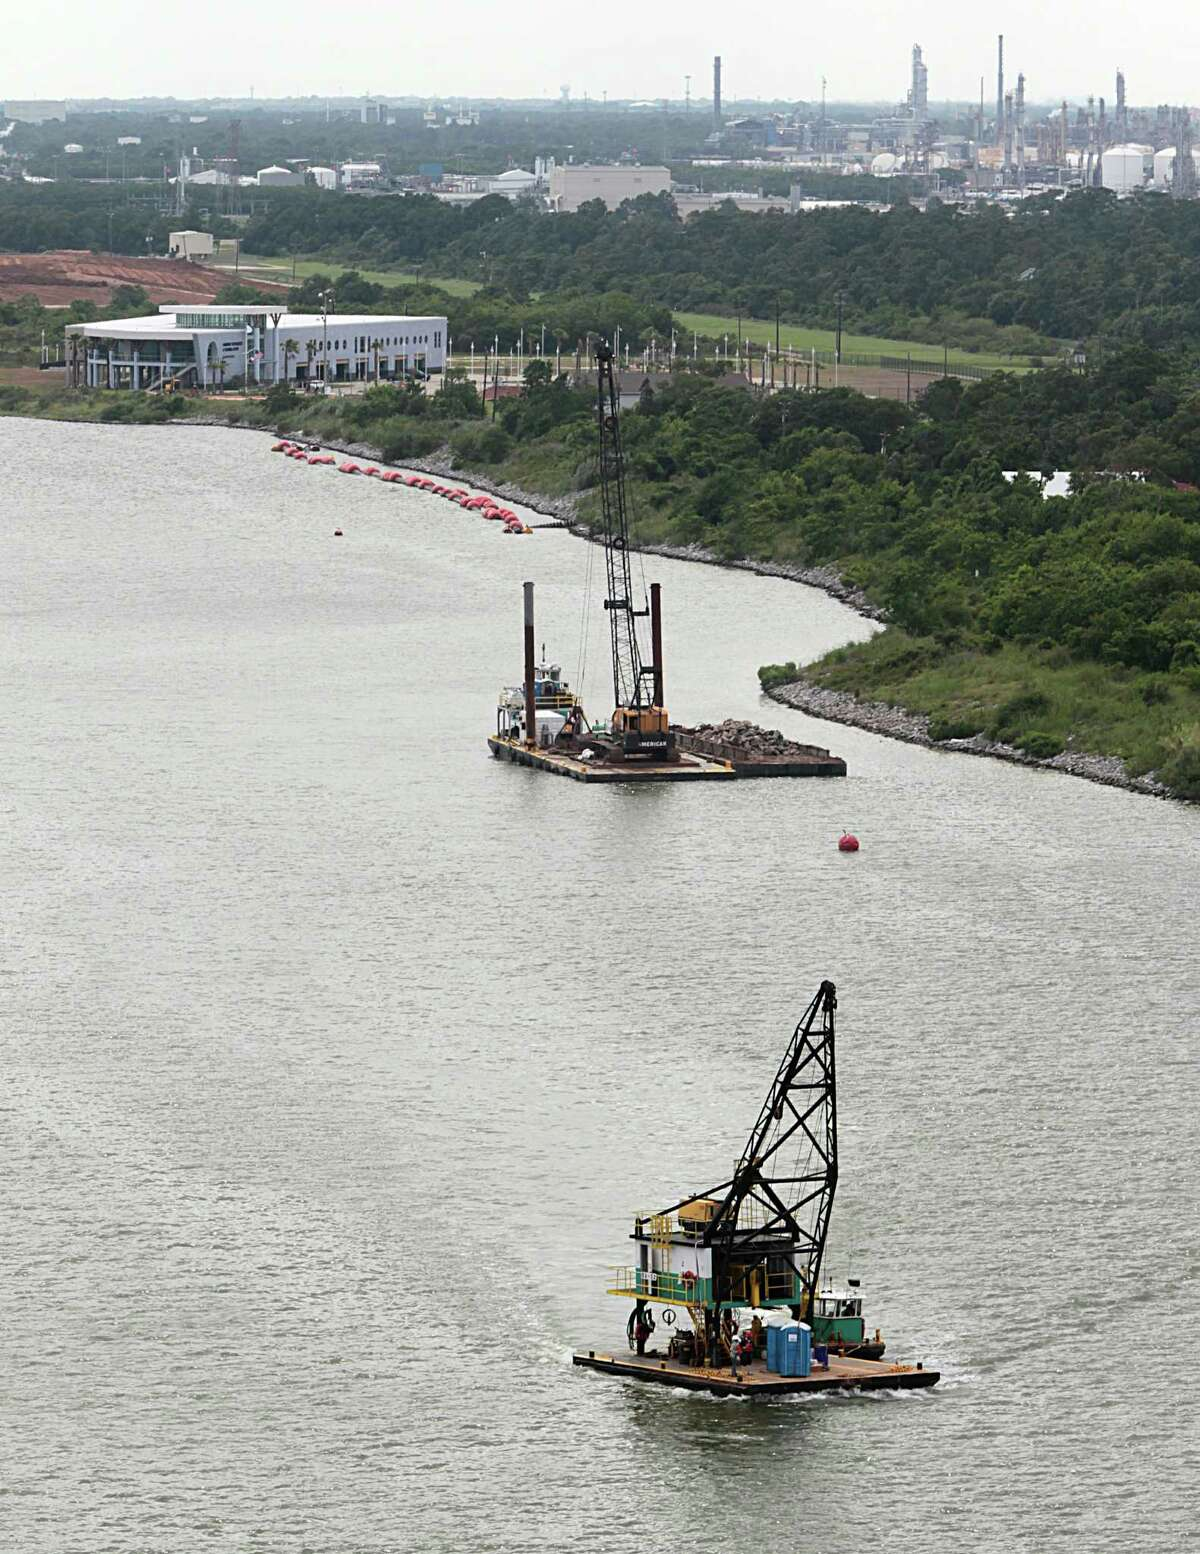 Dredging work continues in June near the Bayport Container Terminal. Regular dredging is essential to maintaining the Ship Channel's depth.